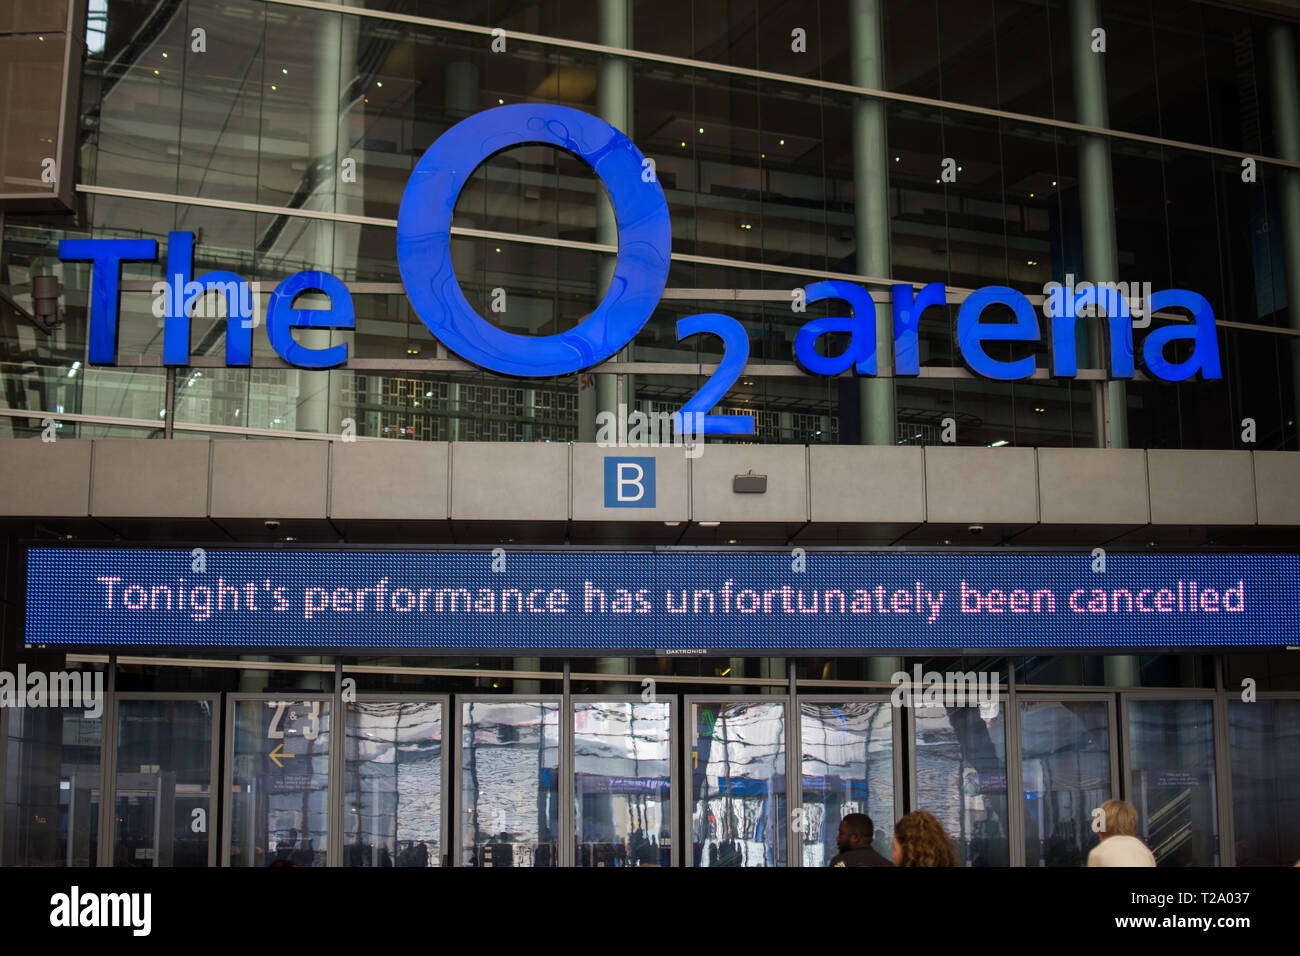 London, UK - March 2019: The O2 arena entrance showing 'The performance has been cancelled sign board' - Stock Image